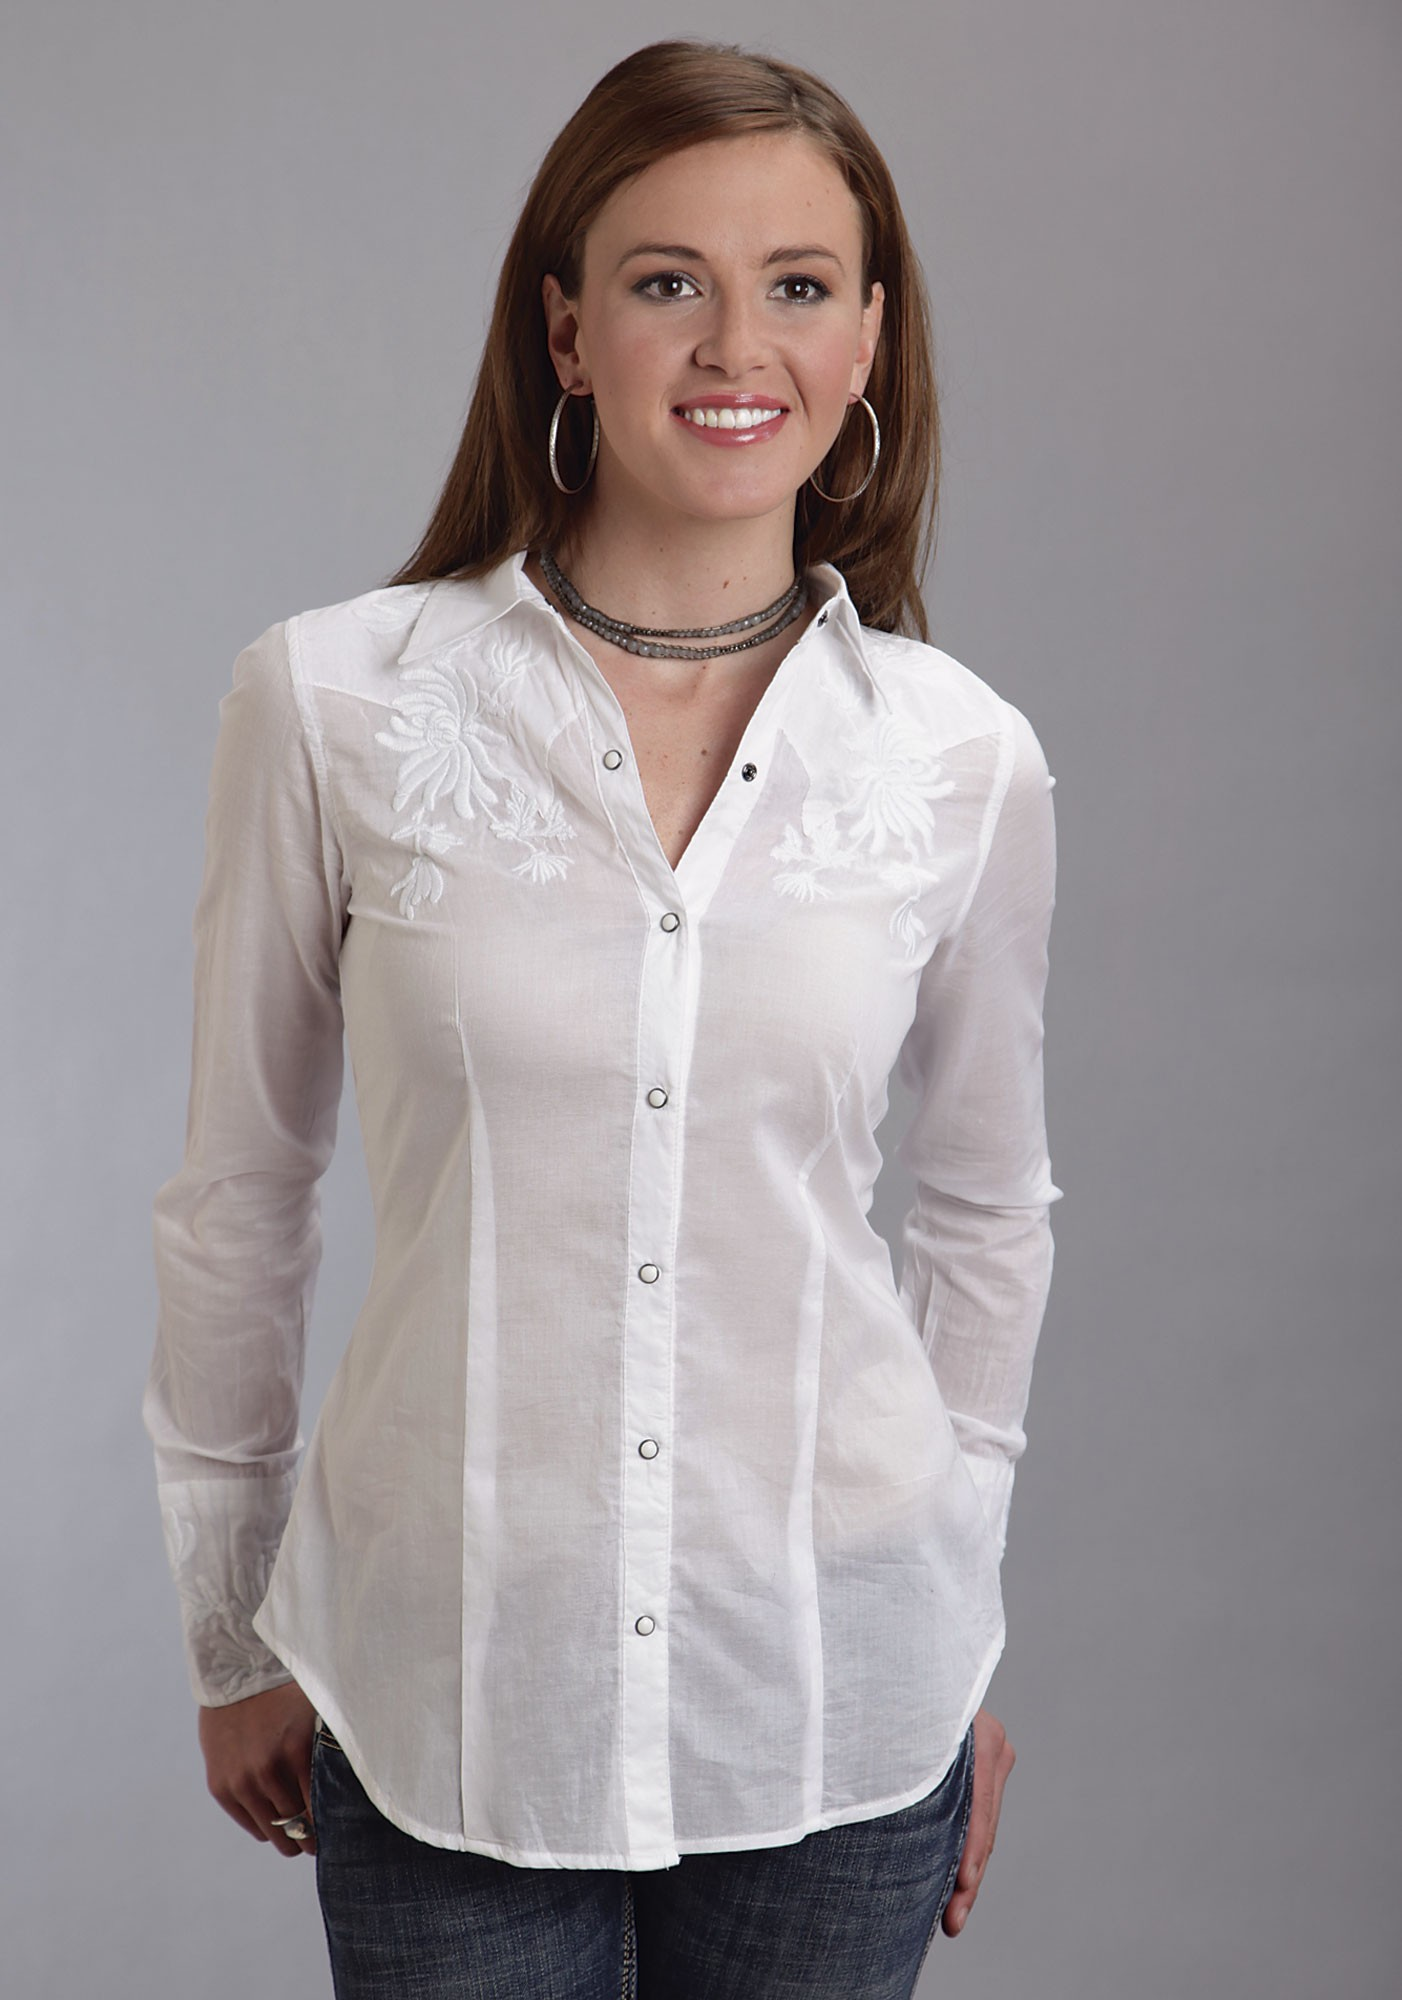 Womens White Shirts stetson® womenu0027s white cotton embroidered long sleeve western shirt LPKWMGG